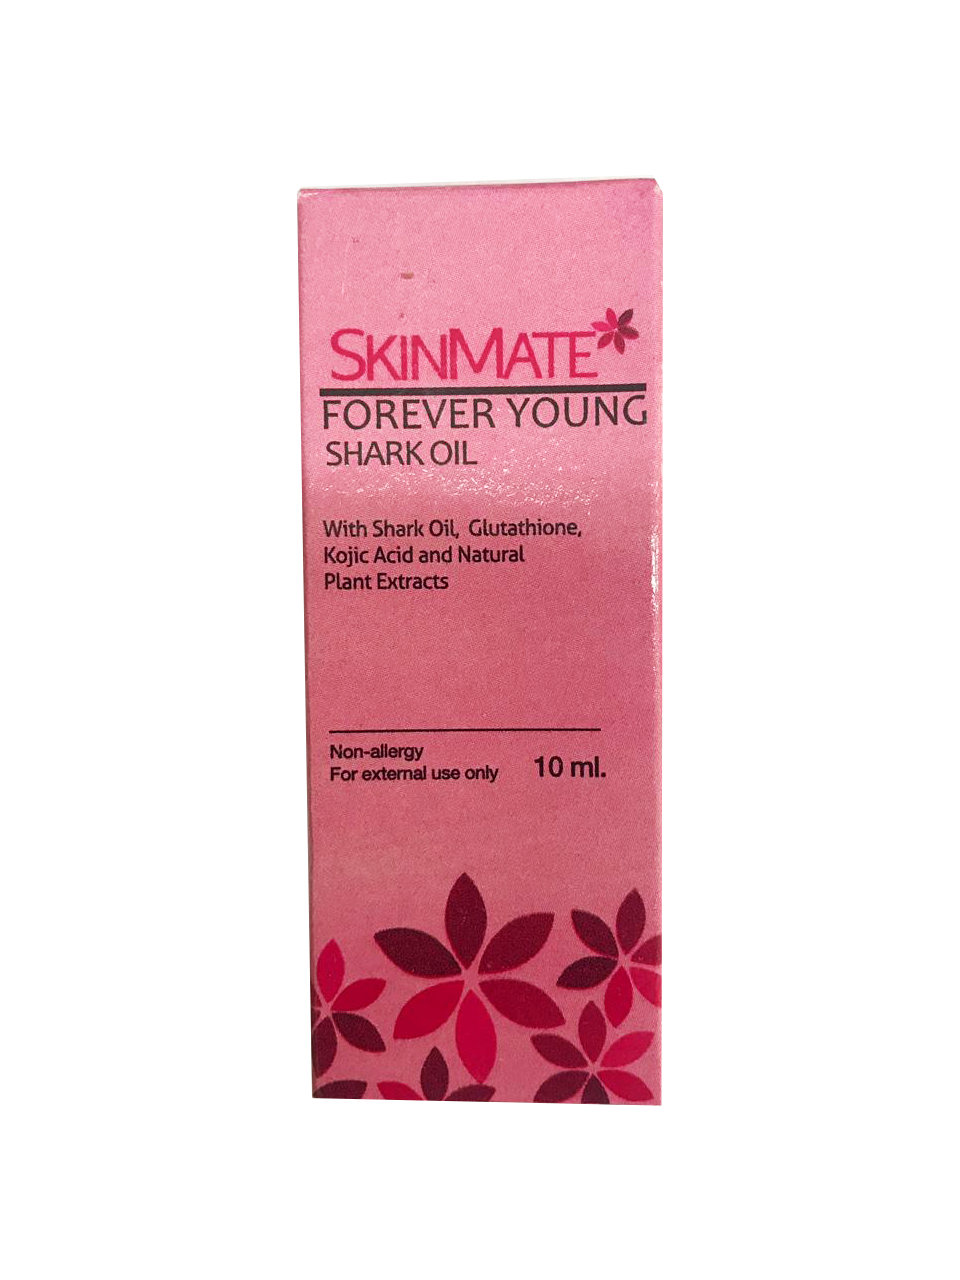 Skinmate Forever Young Shark Oil 10ml